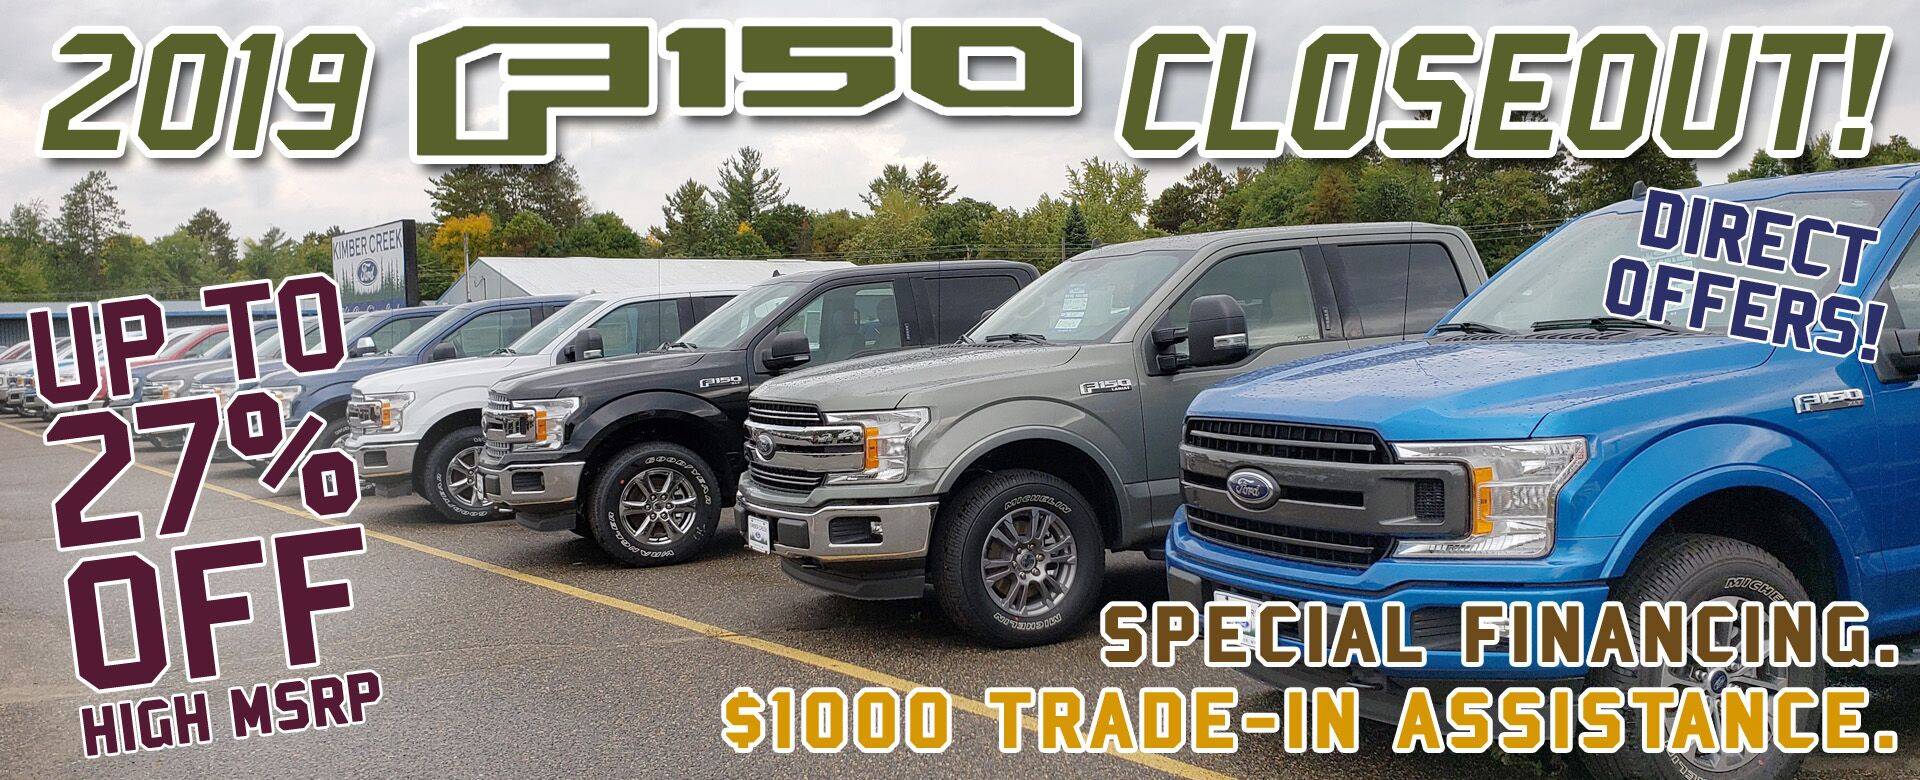 2019 Ford F-150 Closeout